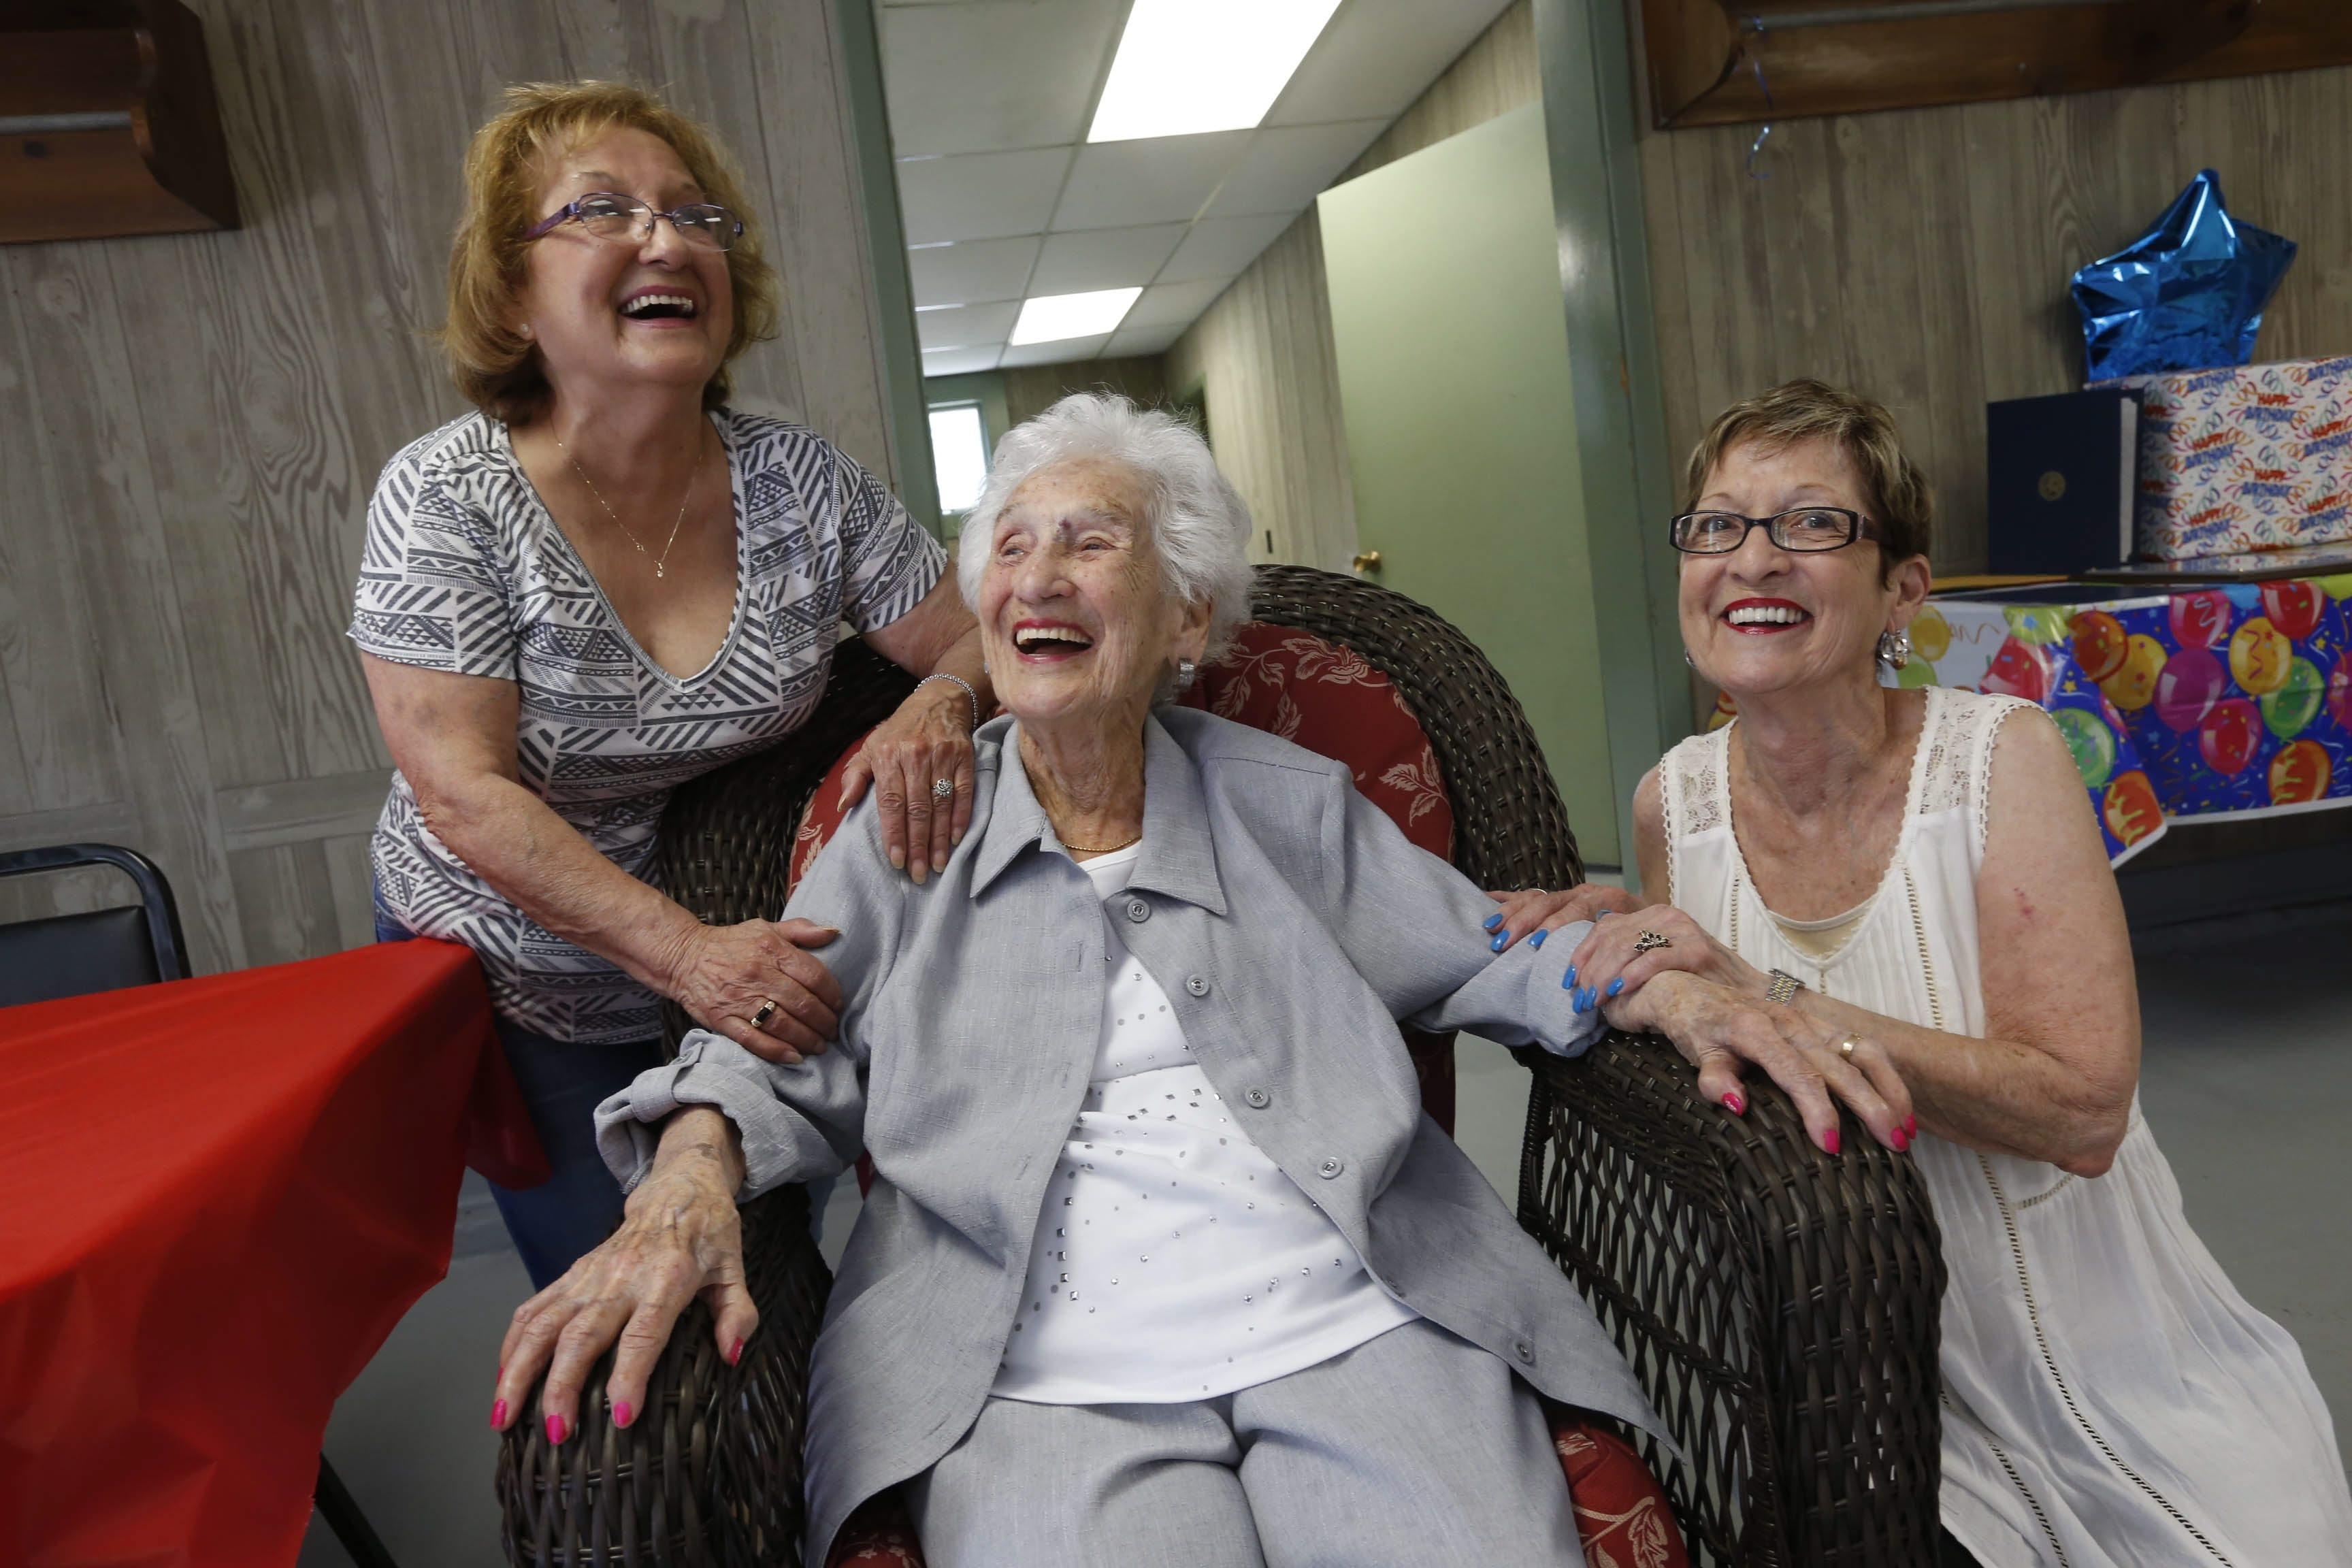 Carmela Trippi celebrates her 105th birthday with daughters Arlene Vincent, left, and Ann Barone at Friendship House in Ellicott Creek Park on Sunday.